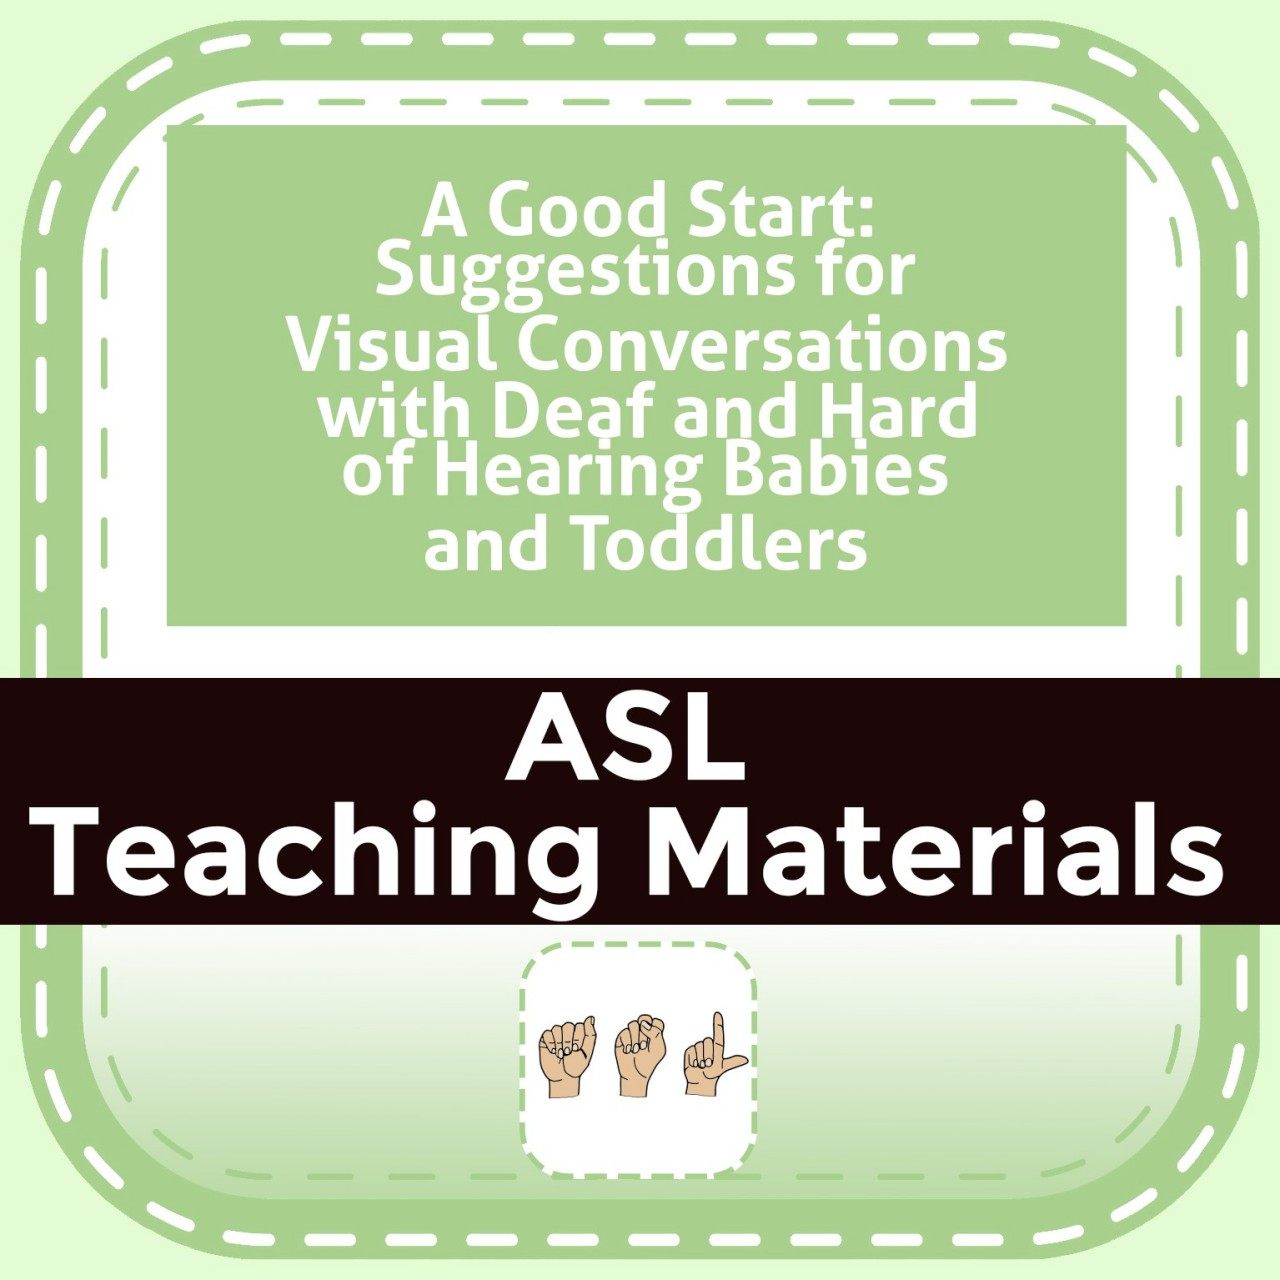 A Good Start: Suggestions for Visual Conversations with Deaf and Hard of Hearing Babies and Toddlers